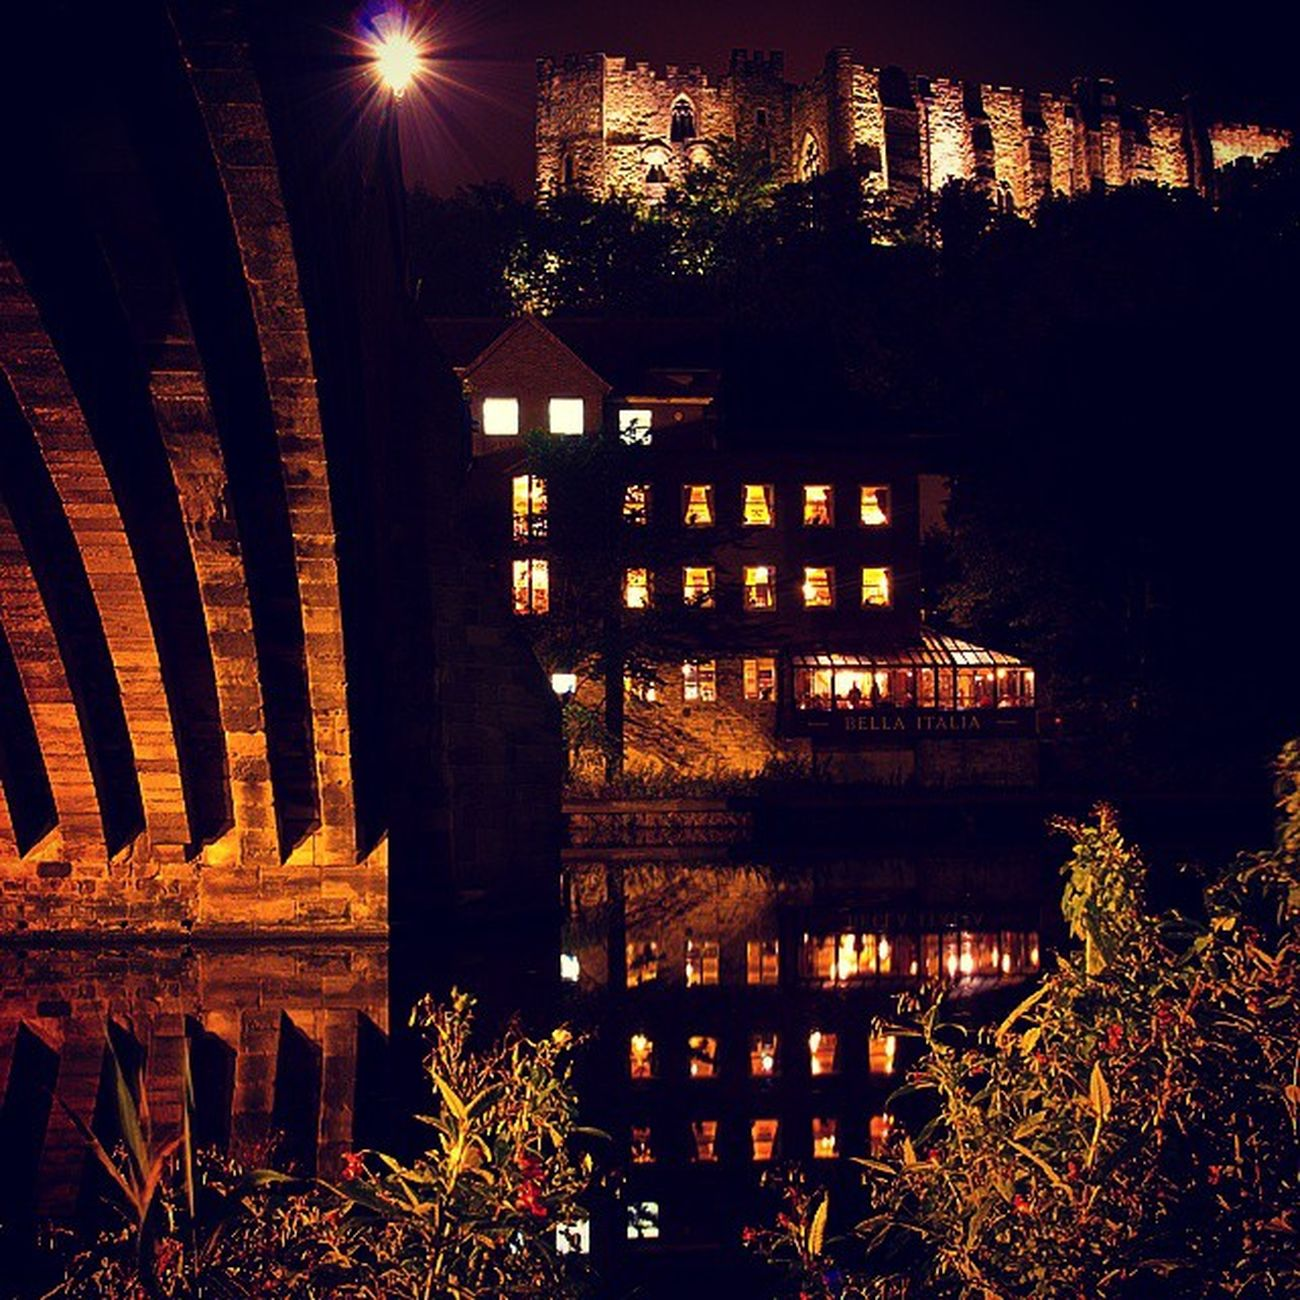 Reflections from the river DurhamCathedral